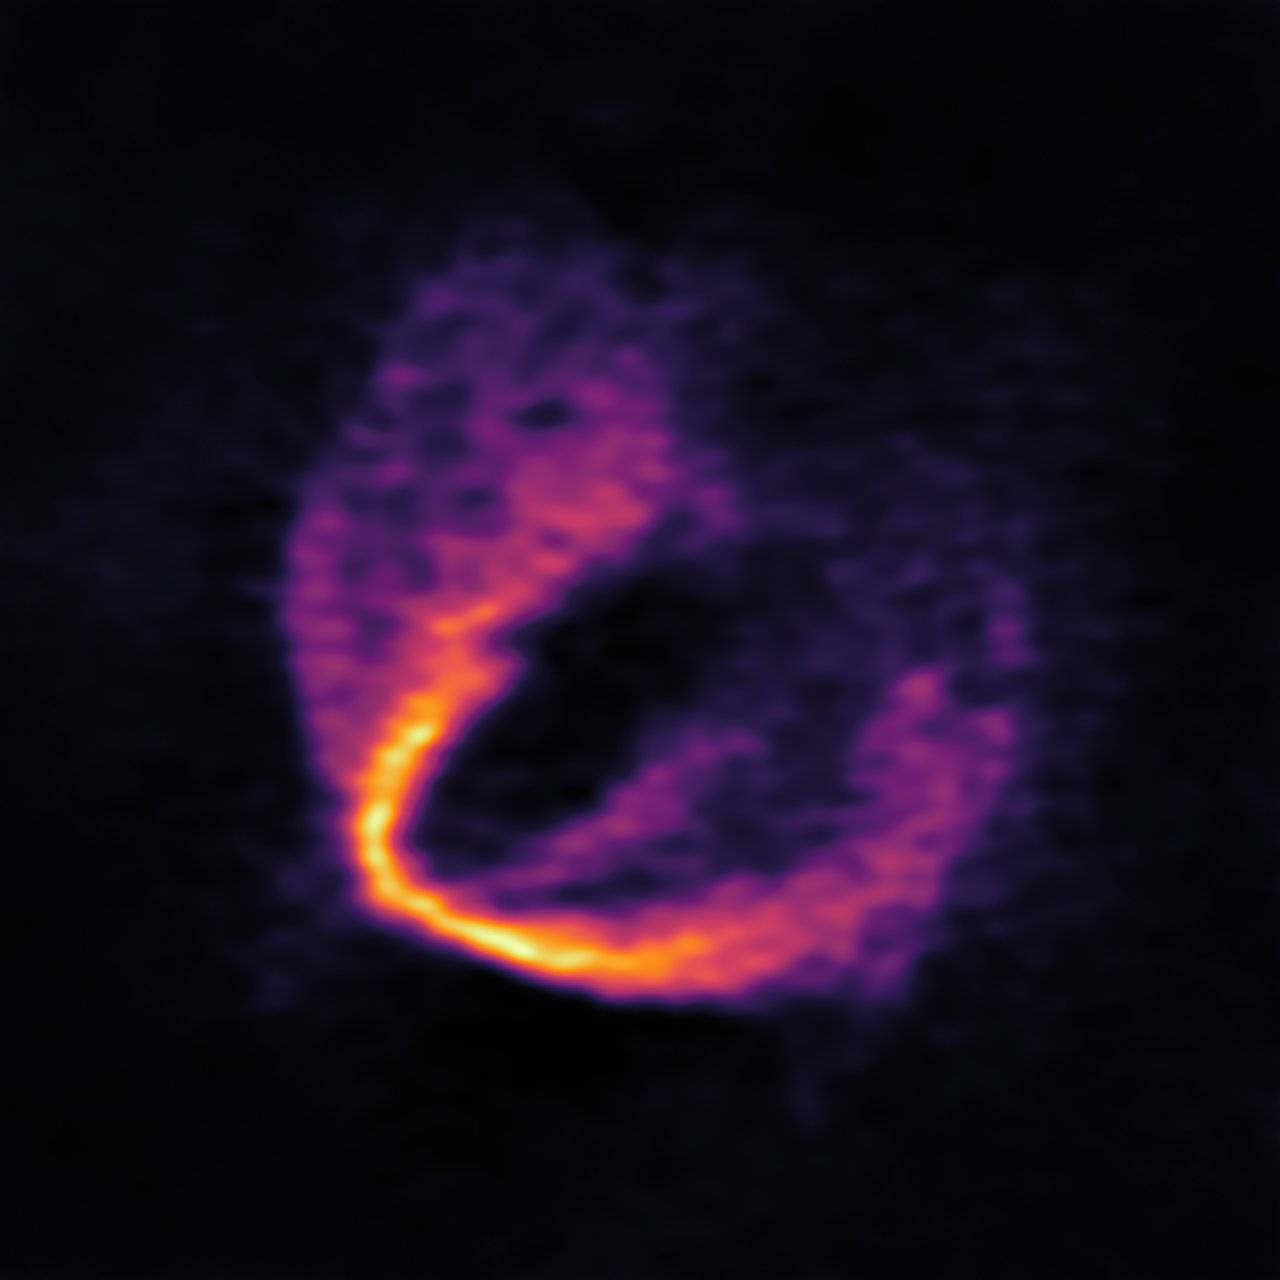 Infant protoplanets discovered in constellation of Sagittarius by ALMA